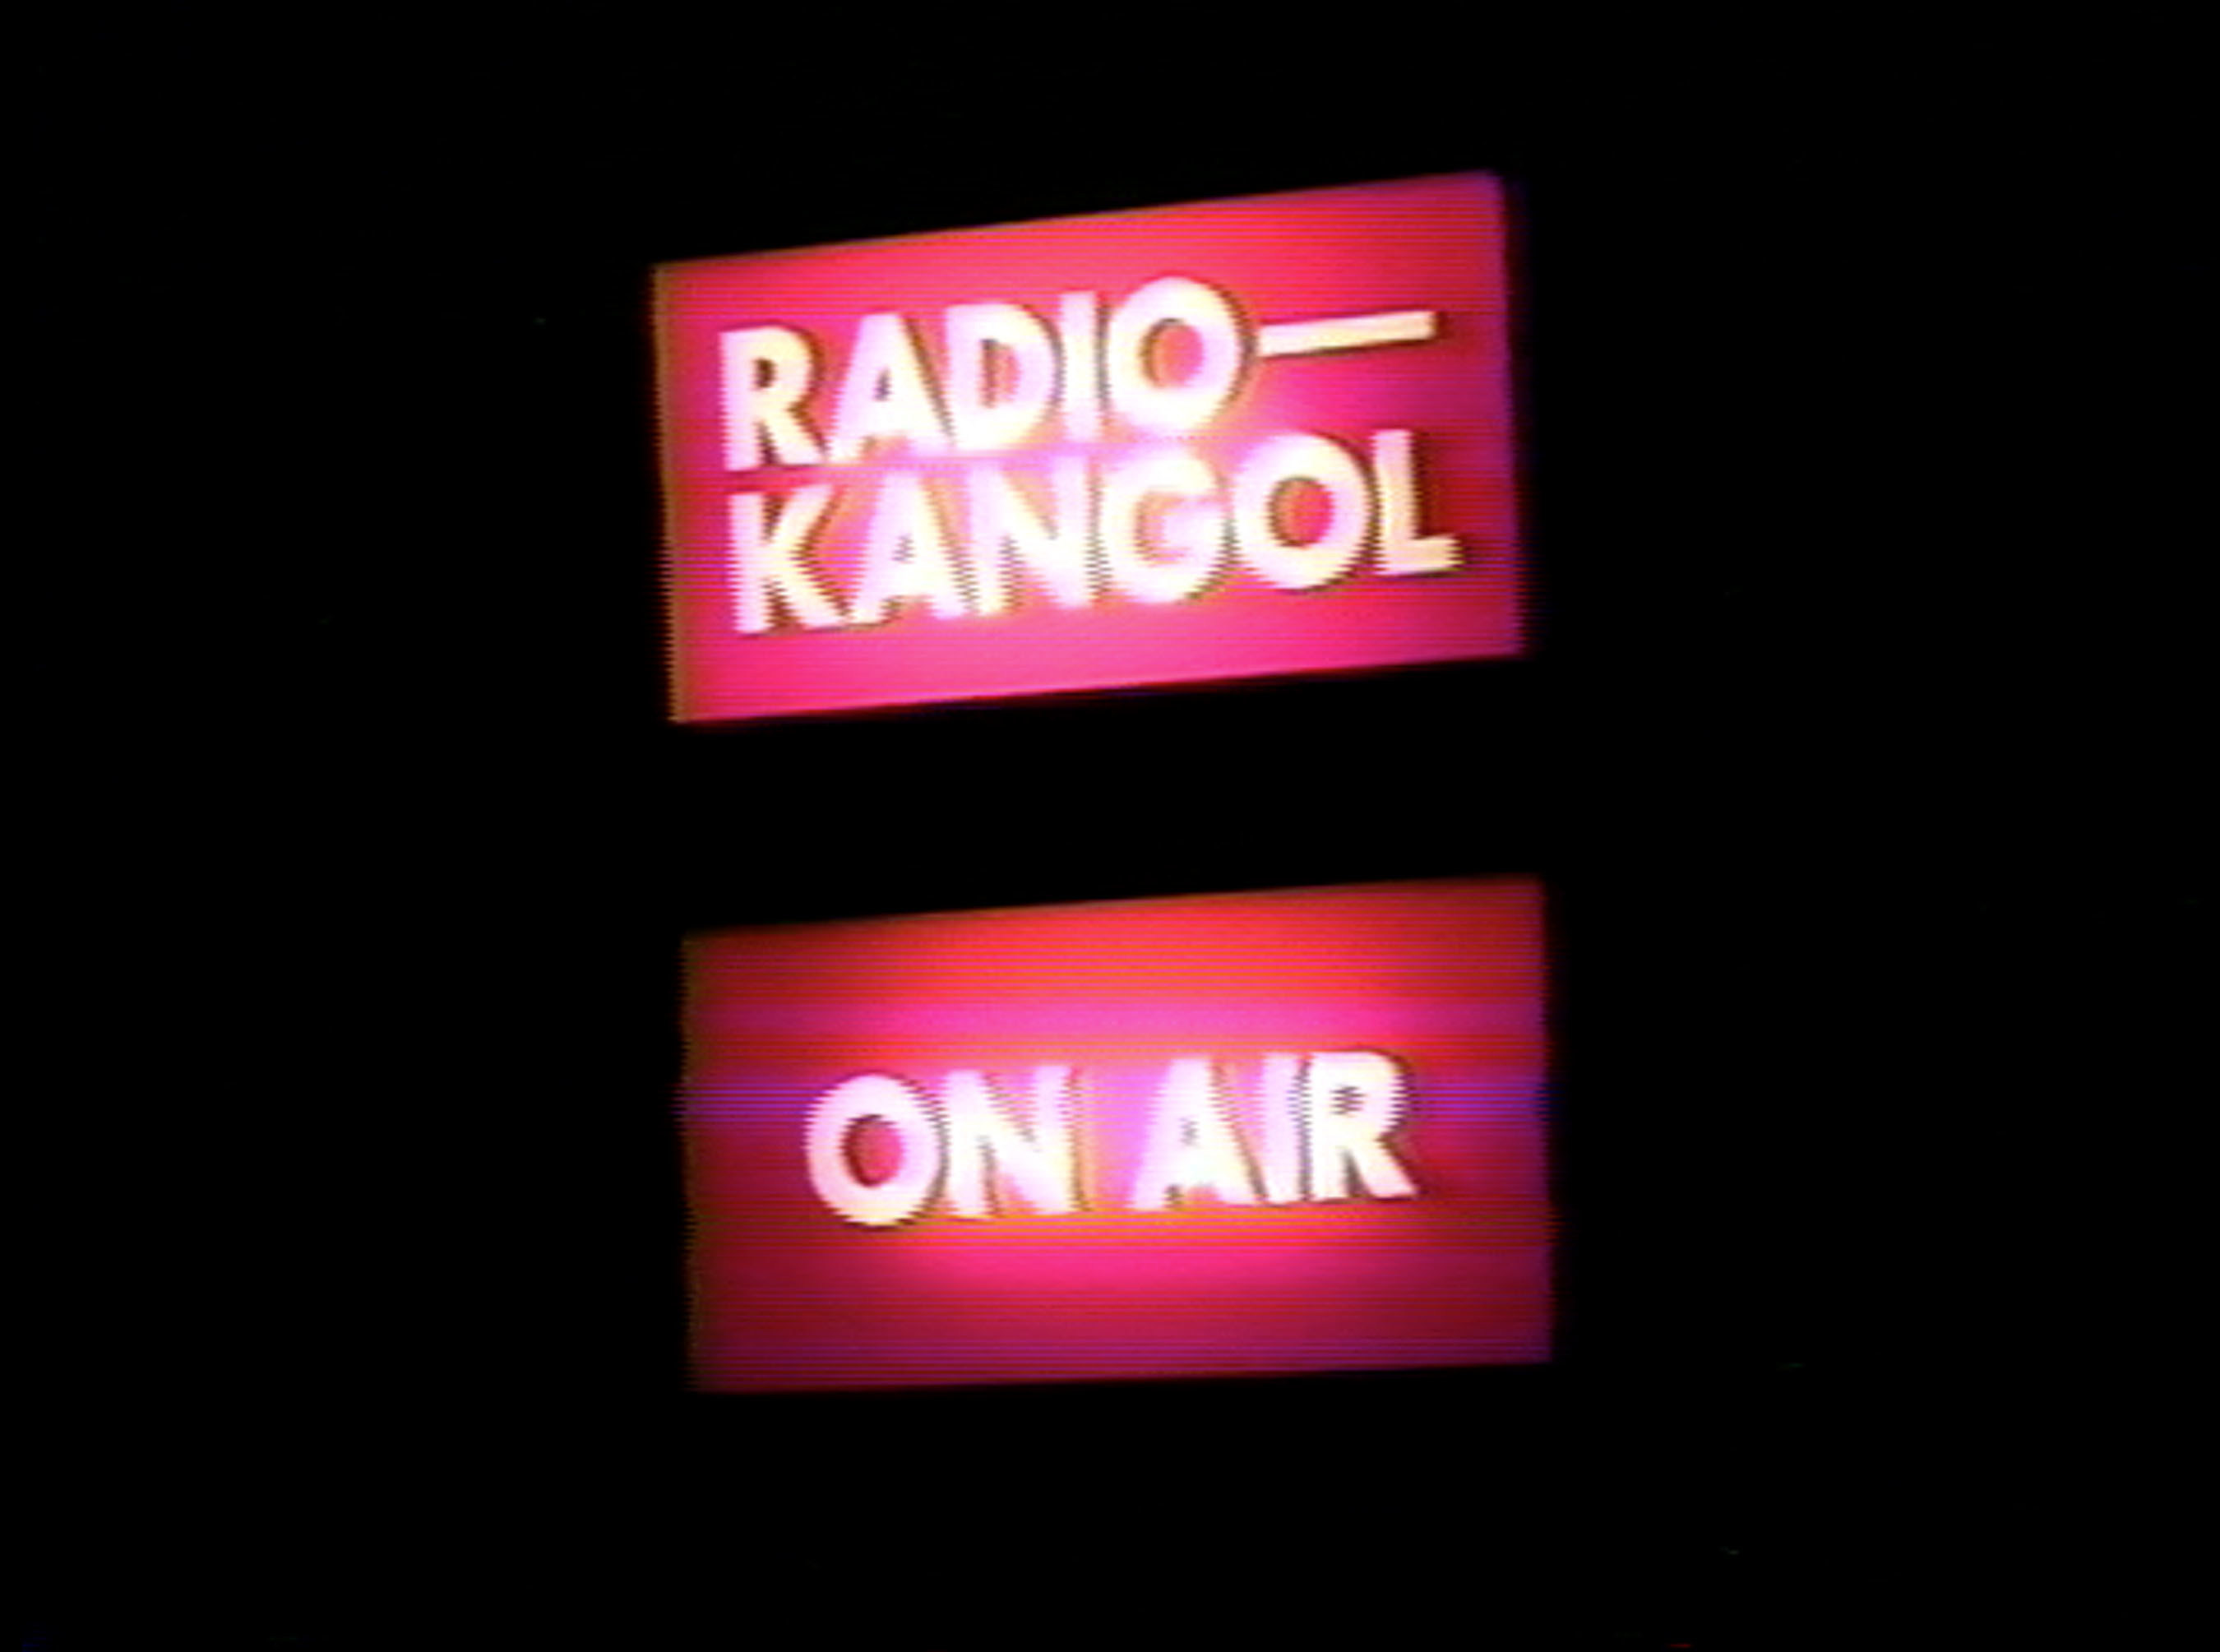 Kangol Teams Up With Ten Underground Record Labels To Launch Radio Kangol